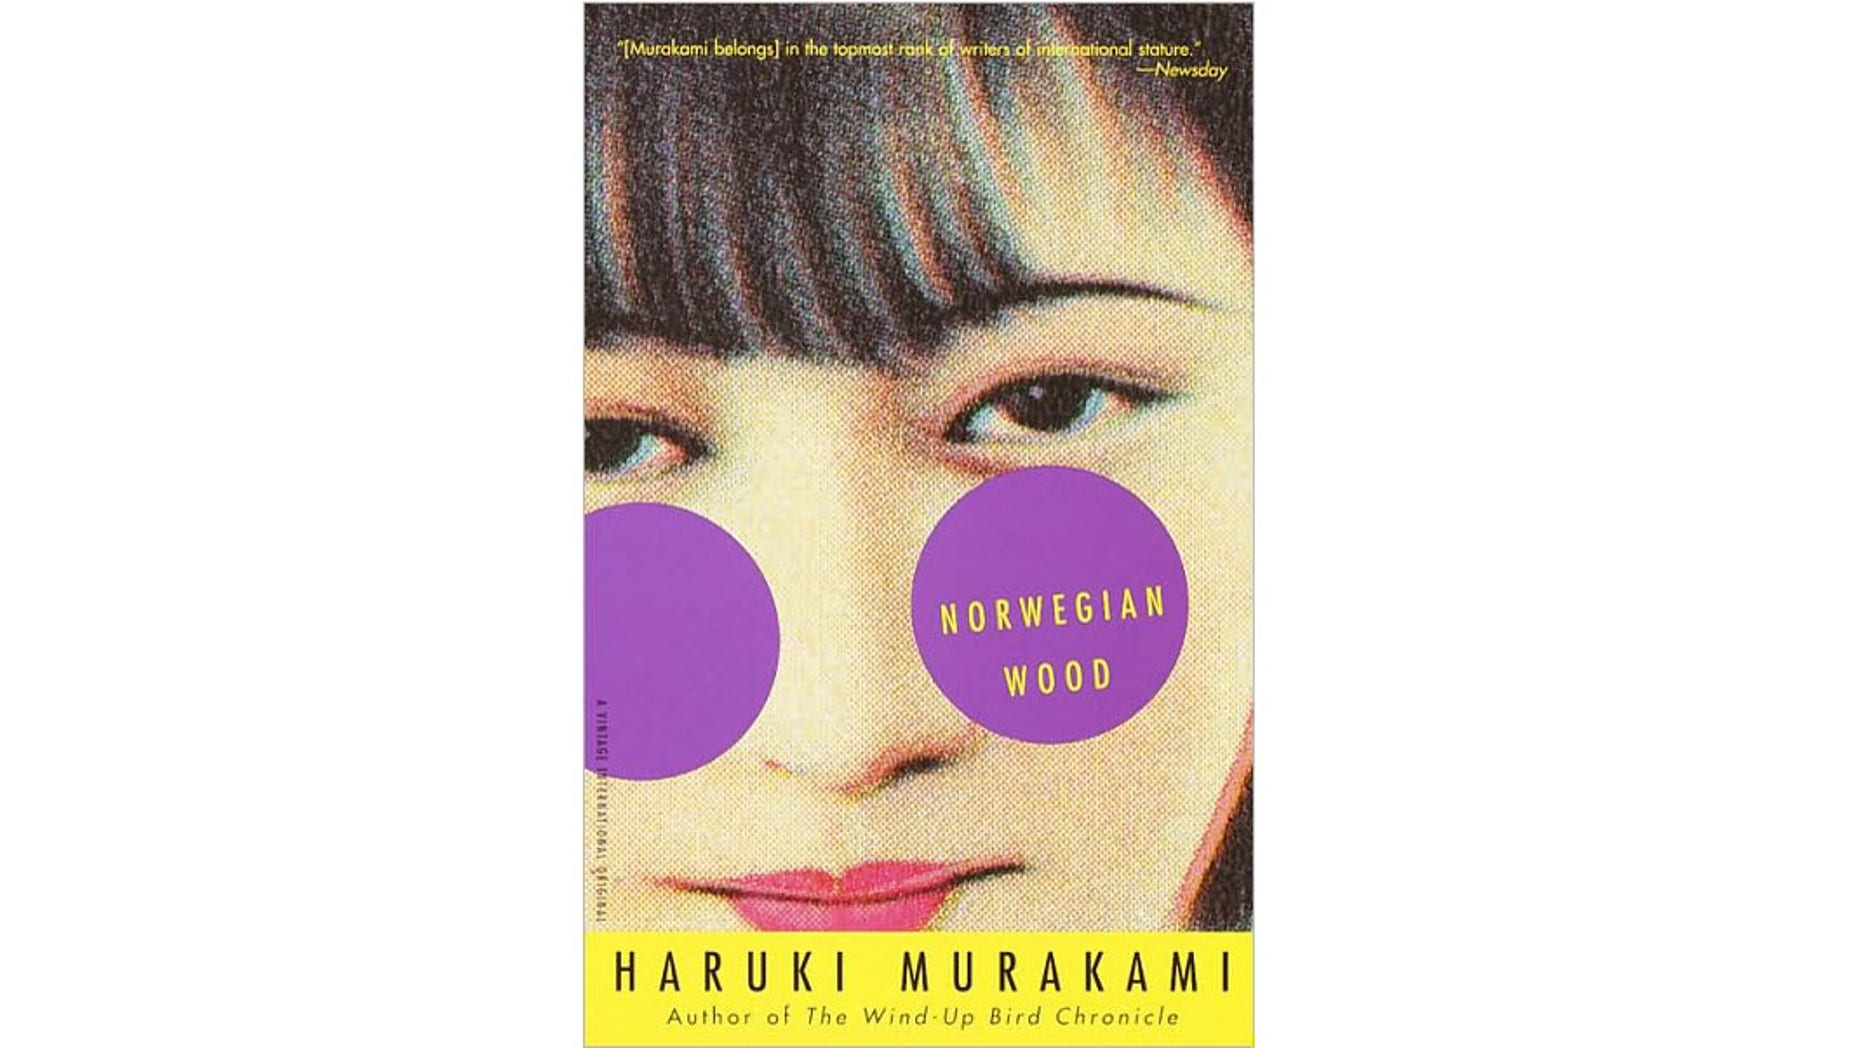 Norwegian Wood was one of the books